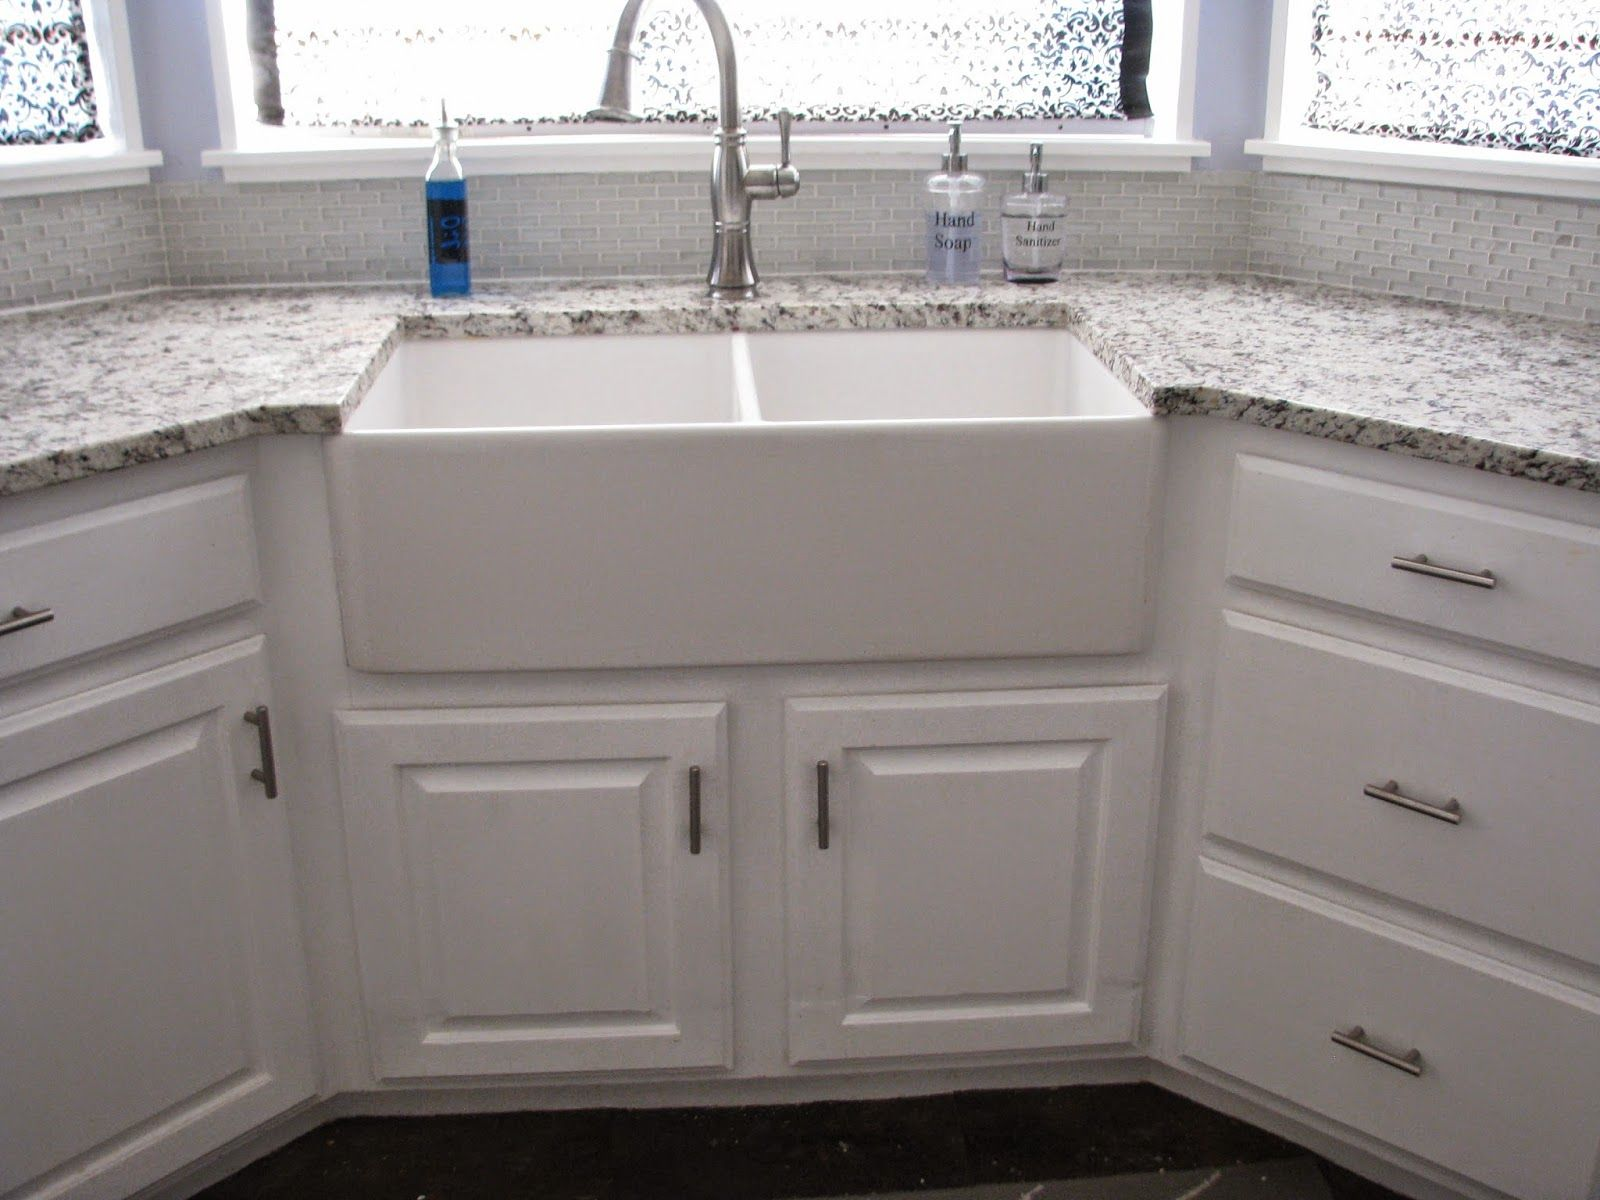 My So Called Diy Blog Resize Your Existing Cabinet And Doors To Fit An Apron Front Sink Kitchen Island With Sink Sink White Kitchen Wall Tiles